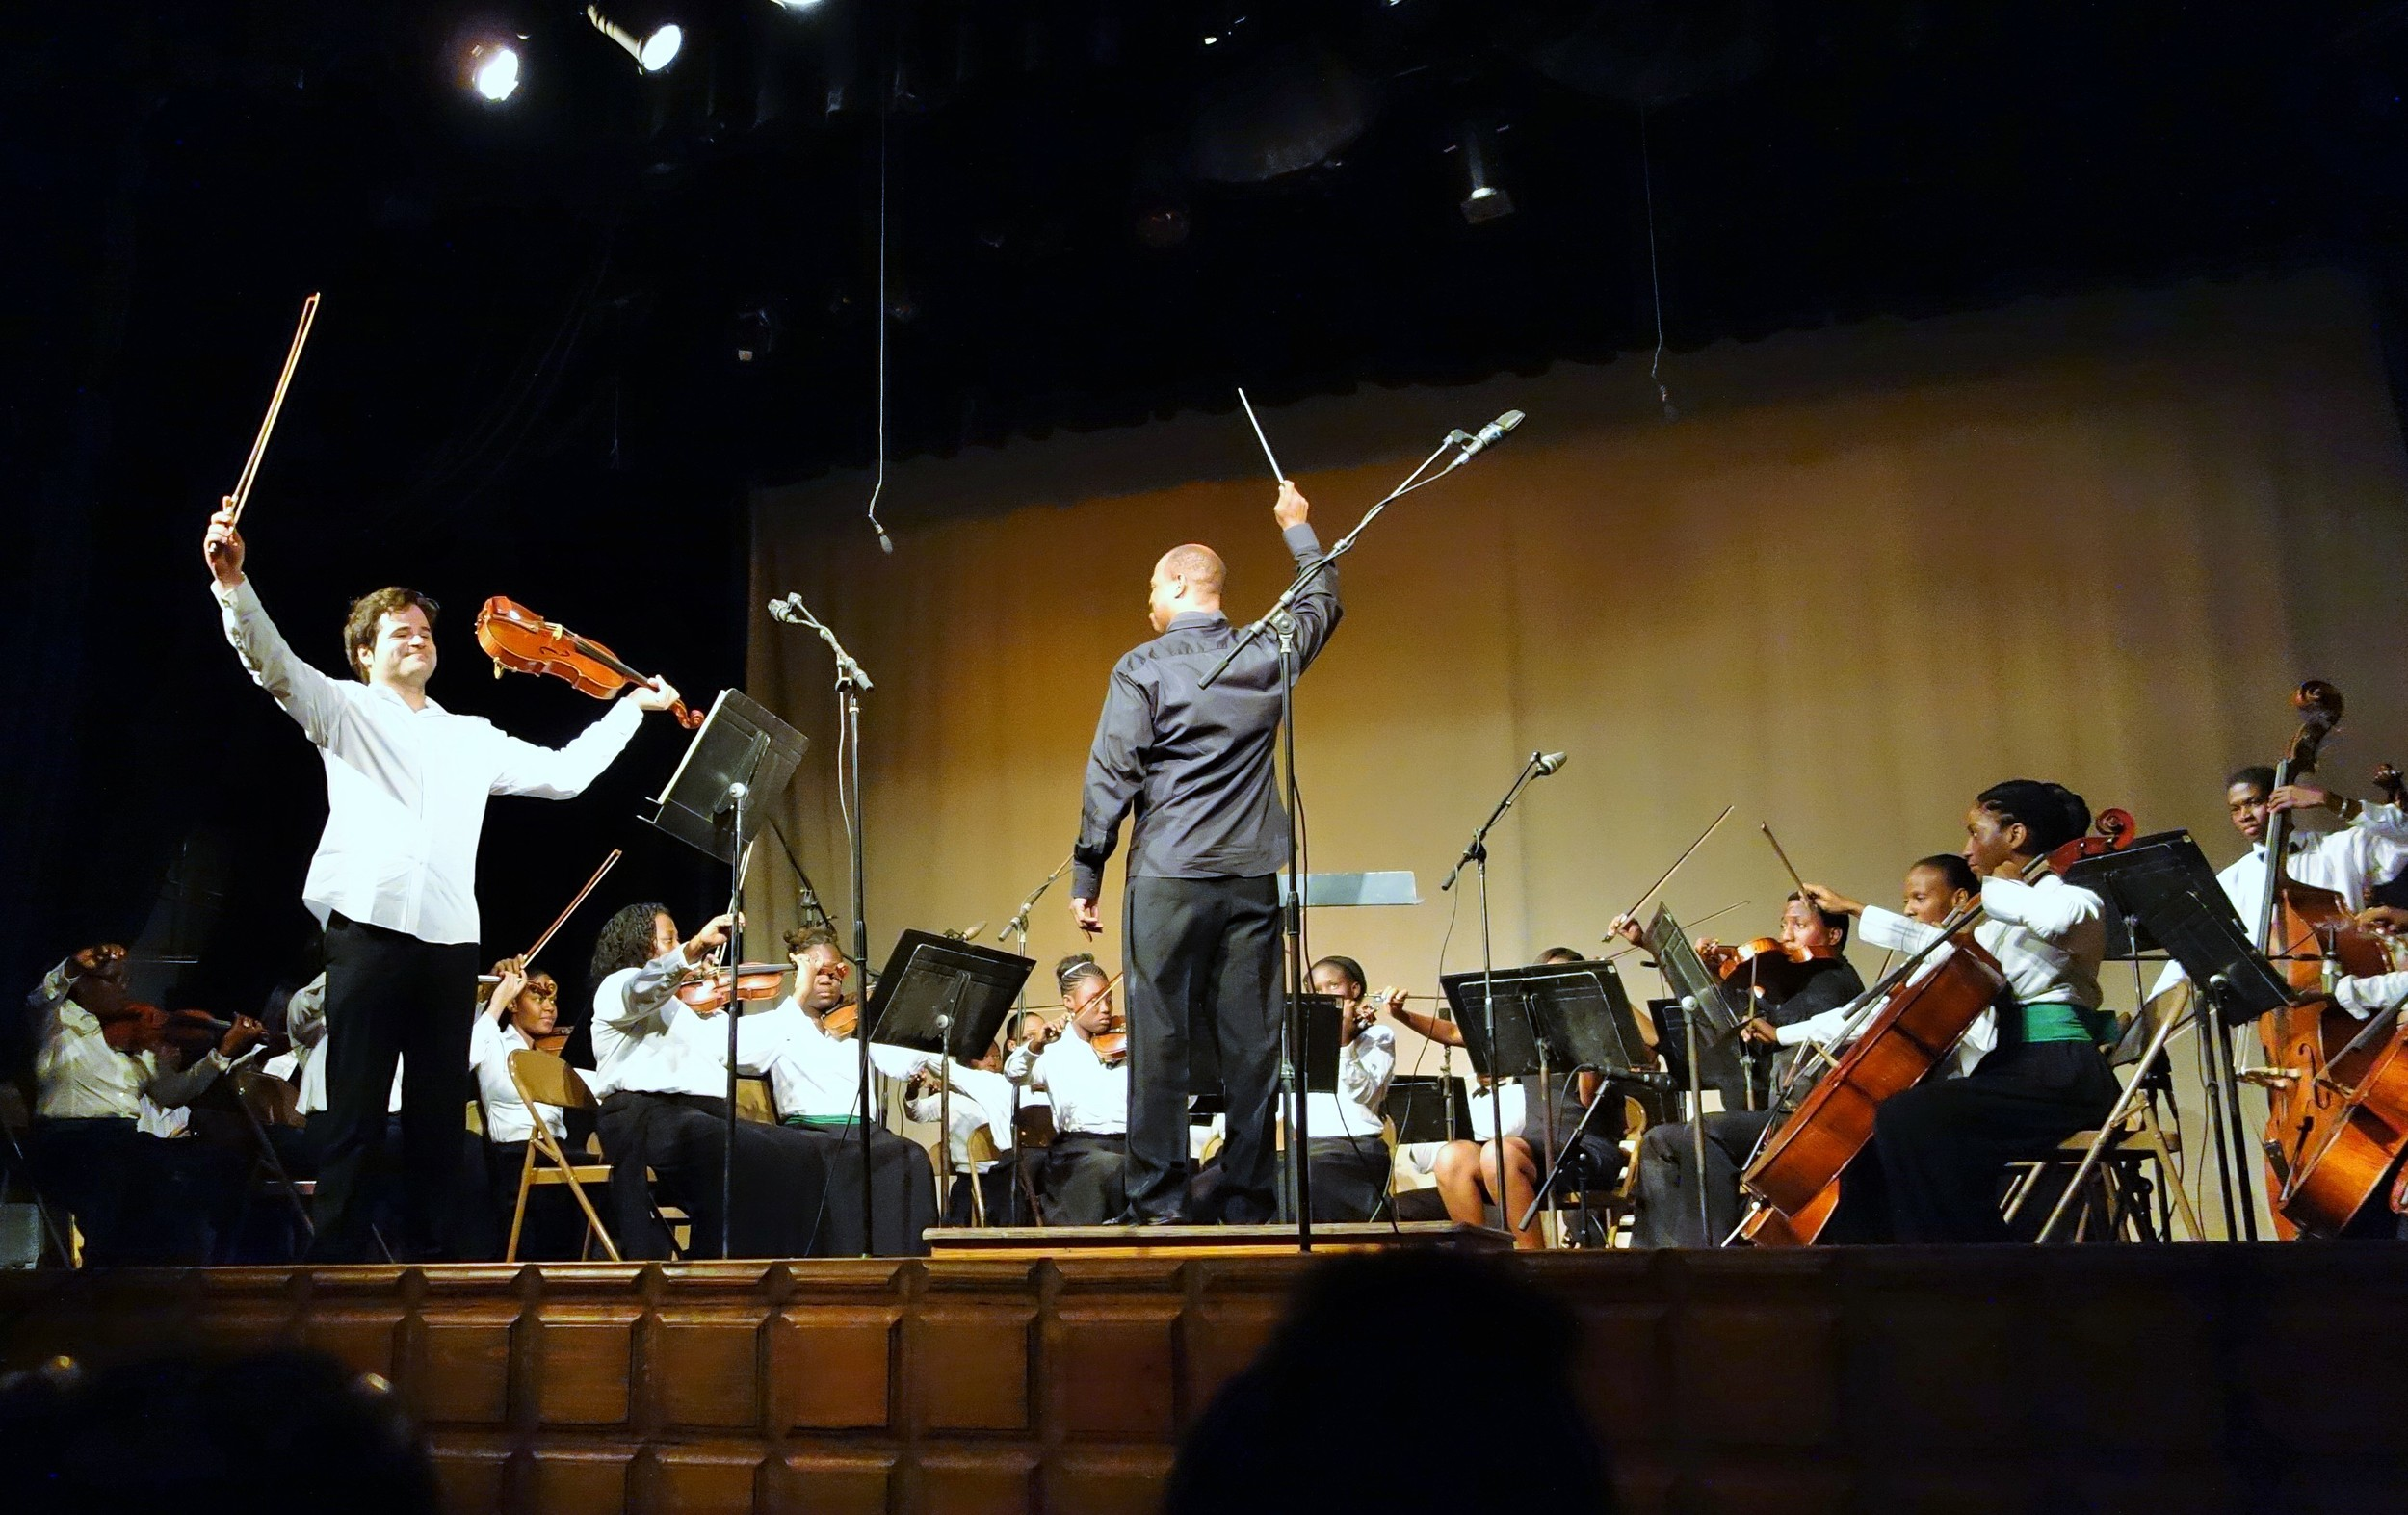 Milan performing with the Sainte-Trinité Philharmonic Orchestra.